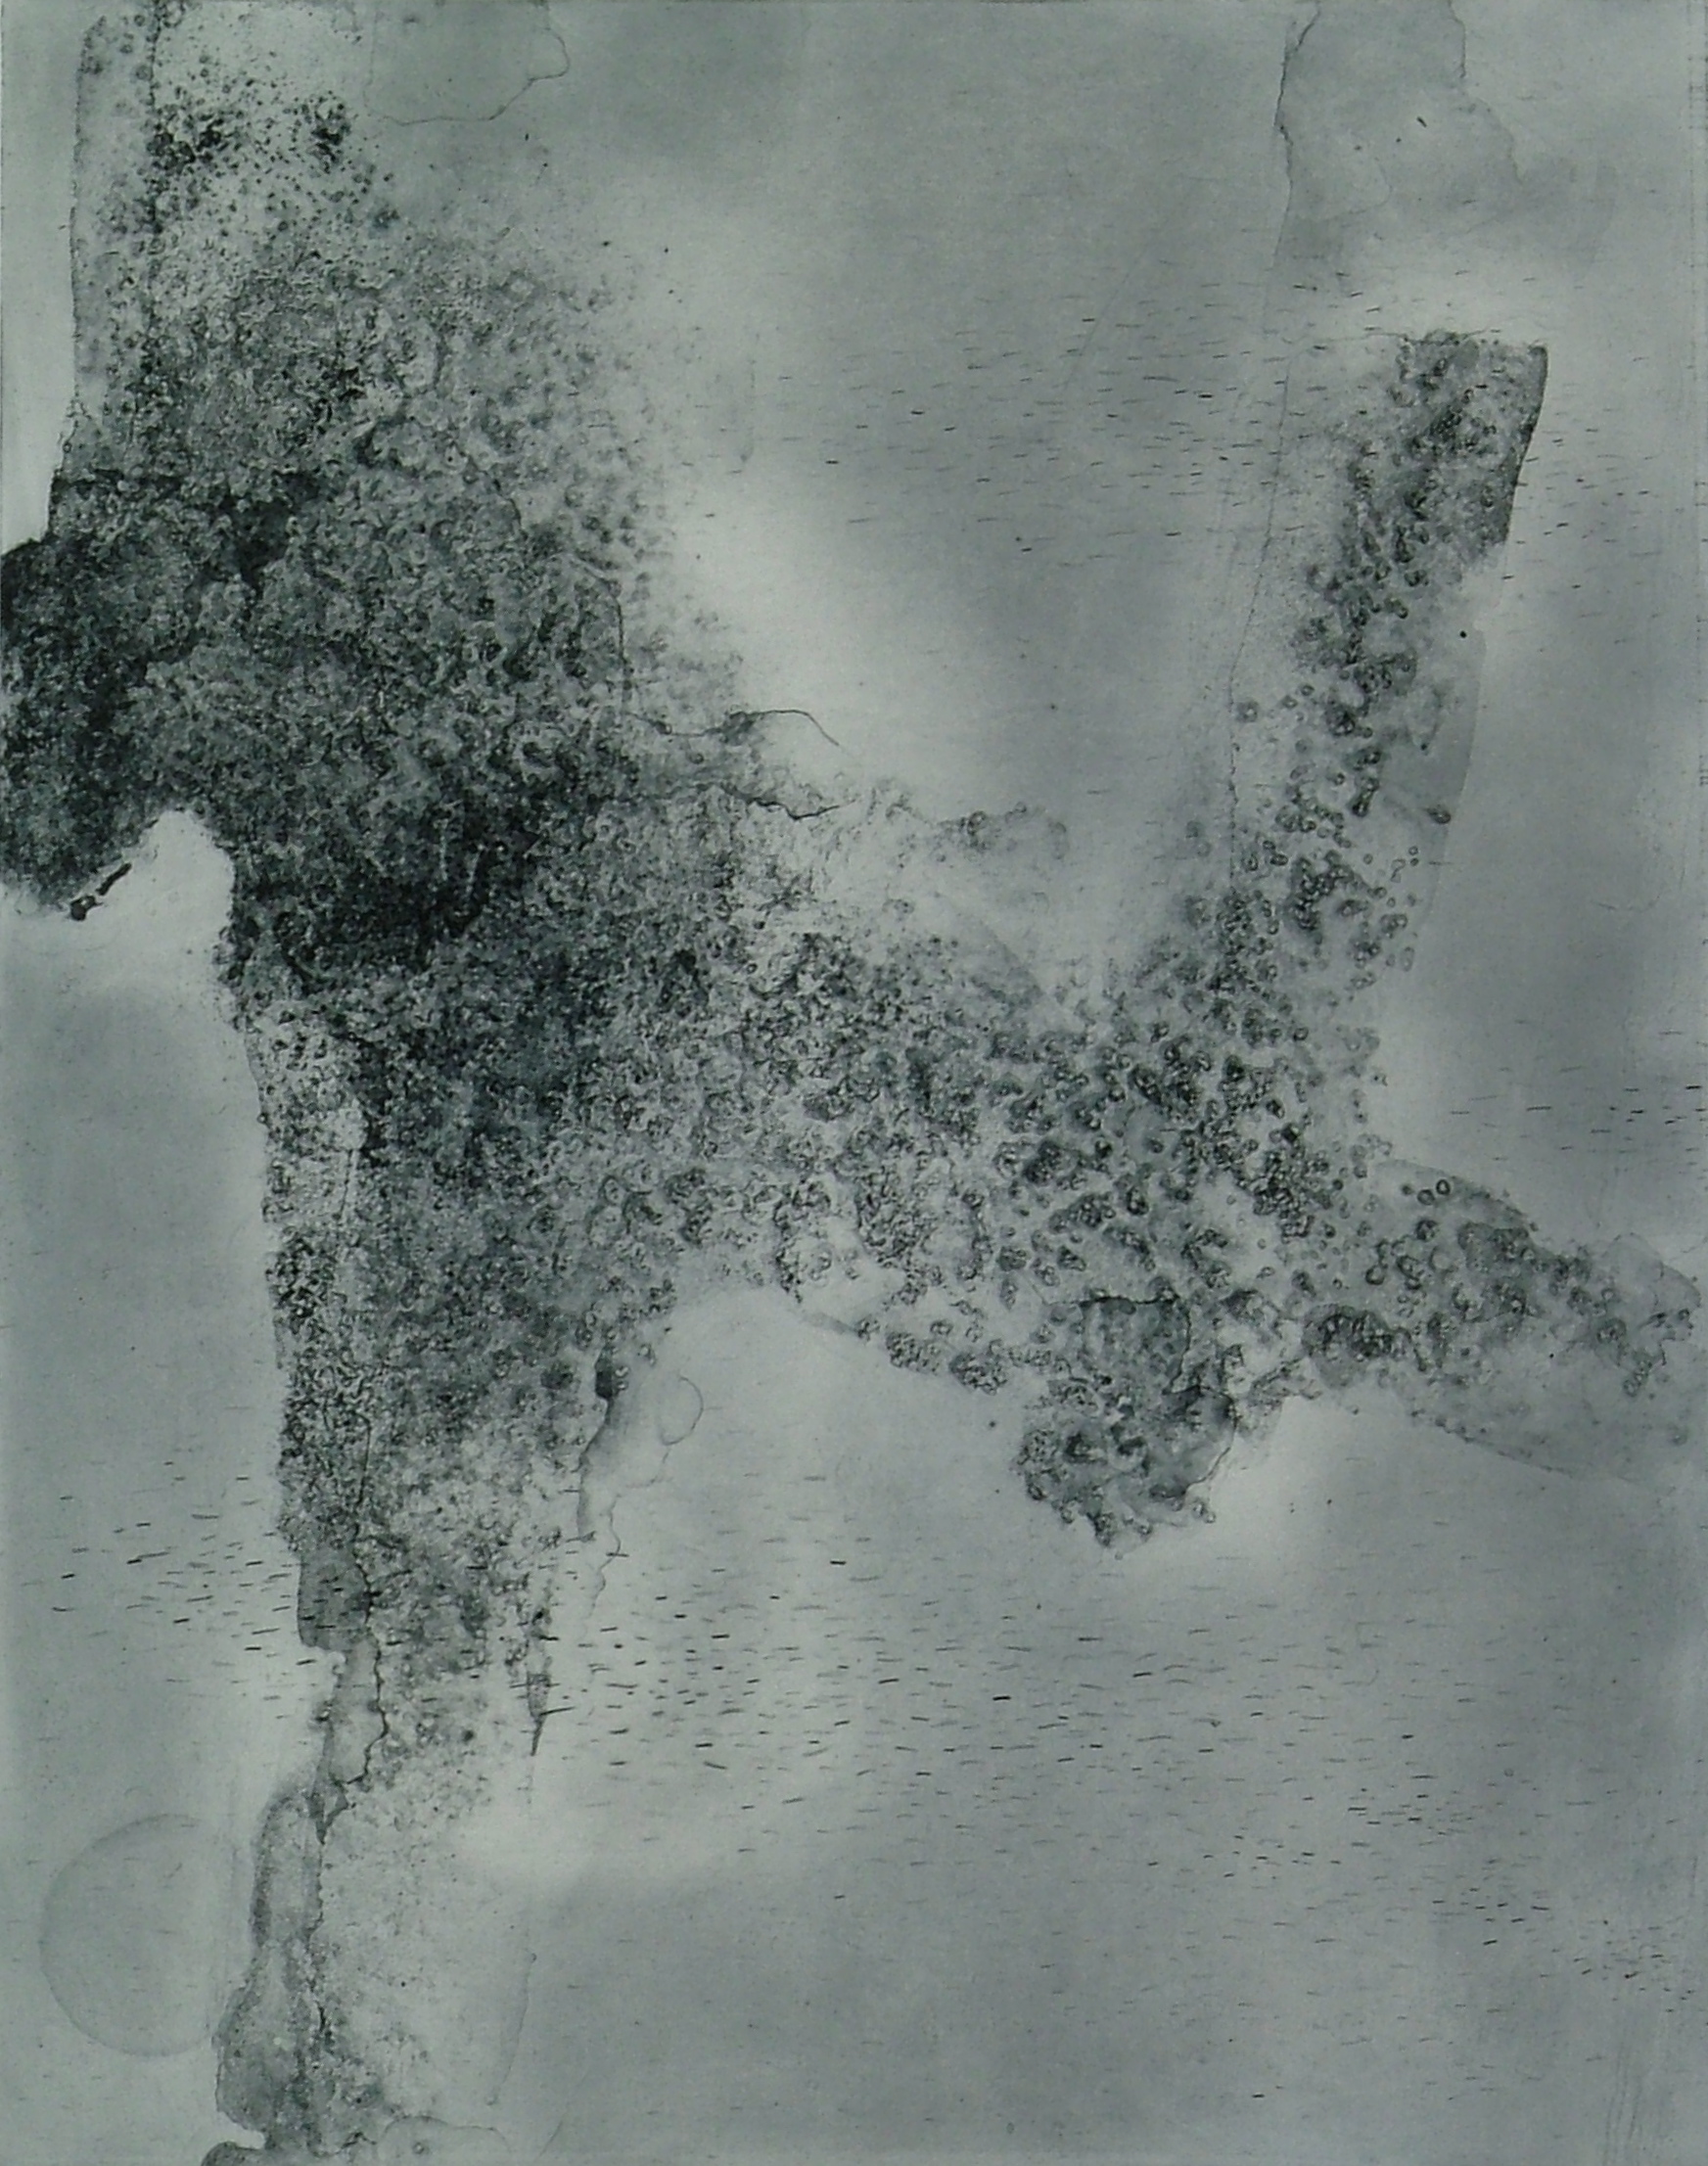 """Kellie Cannon  Ice/migration 2  polymer plate etching on hahnemuhle copperplate paper  16"""" x 20"""" image 22"""" x 26"""" paper"""